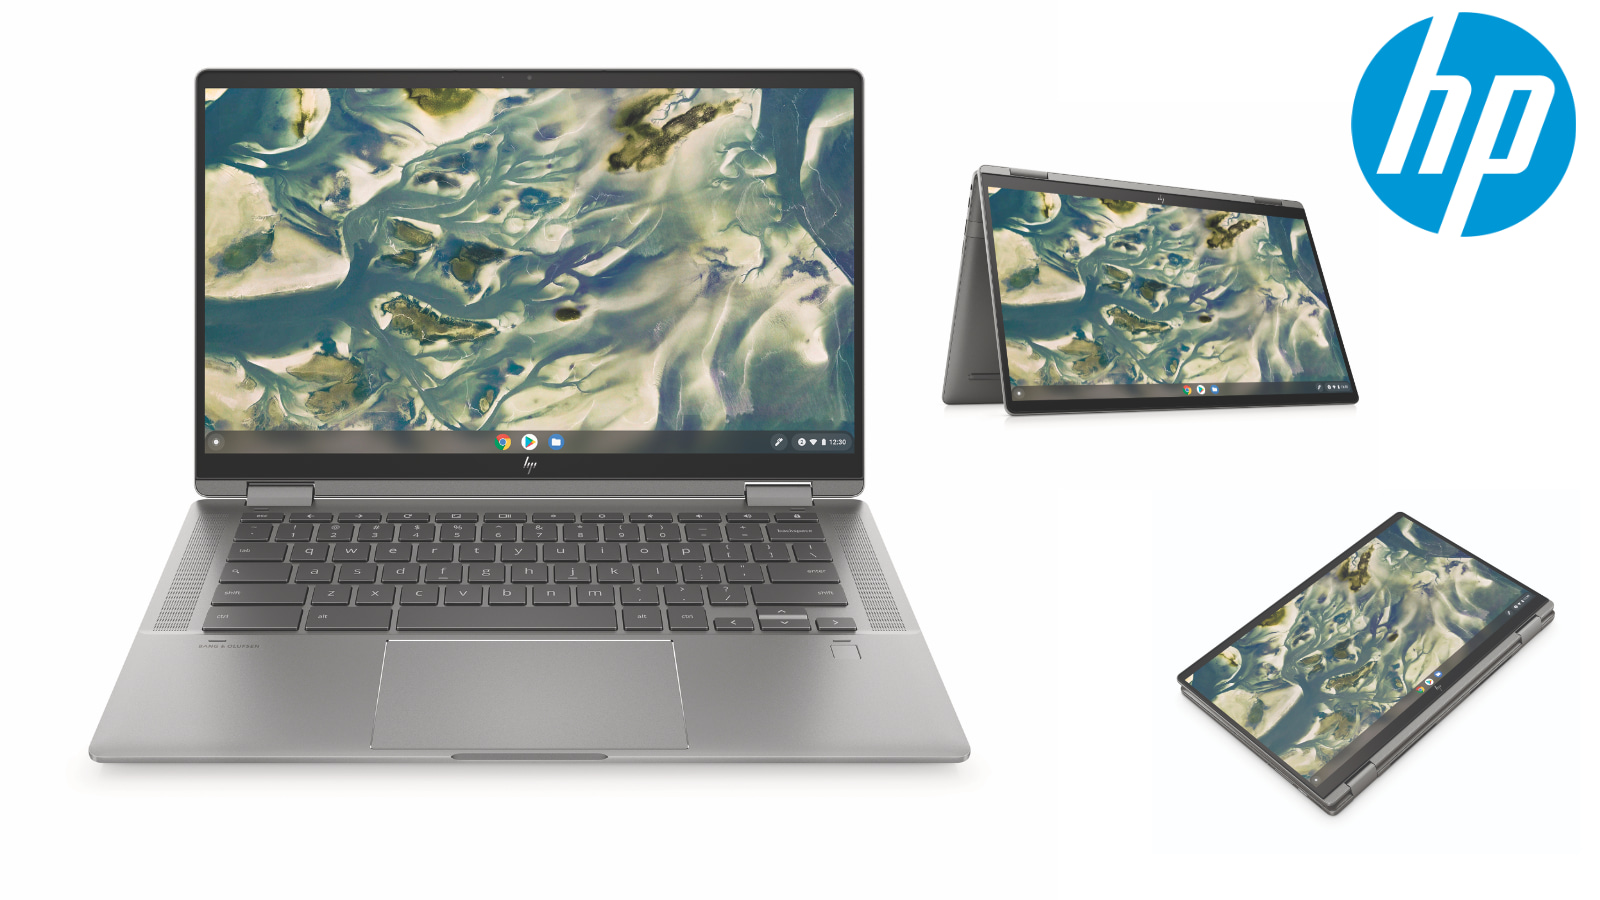 HP refreshes its premium Chromebook x360 with 11th Gen Intel Tiger Lake CPUs